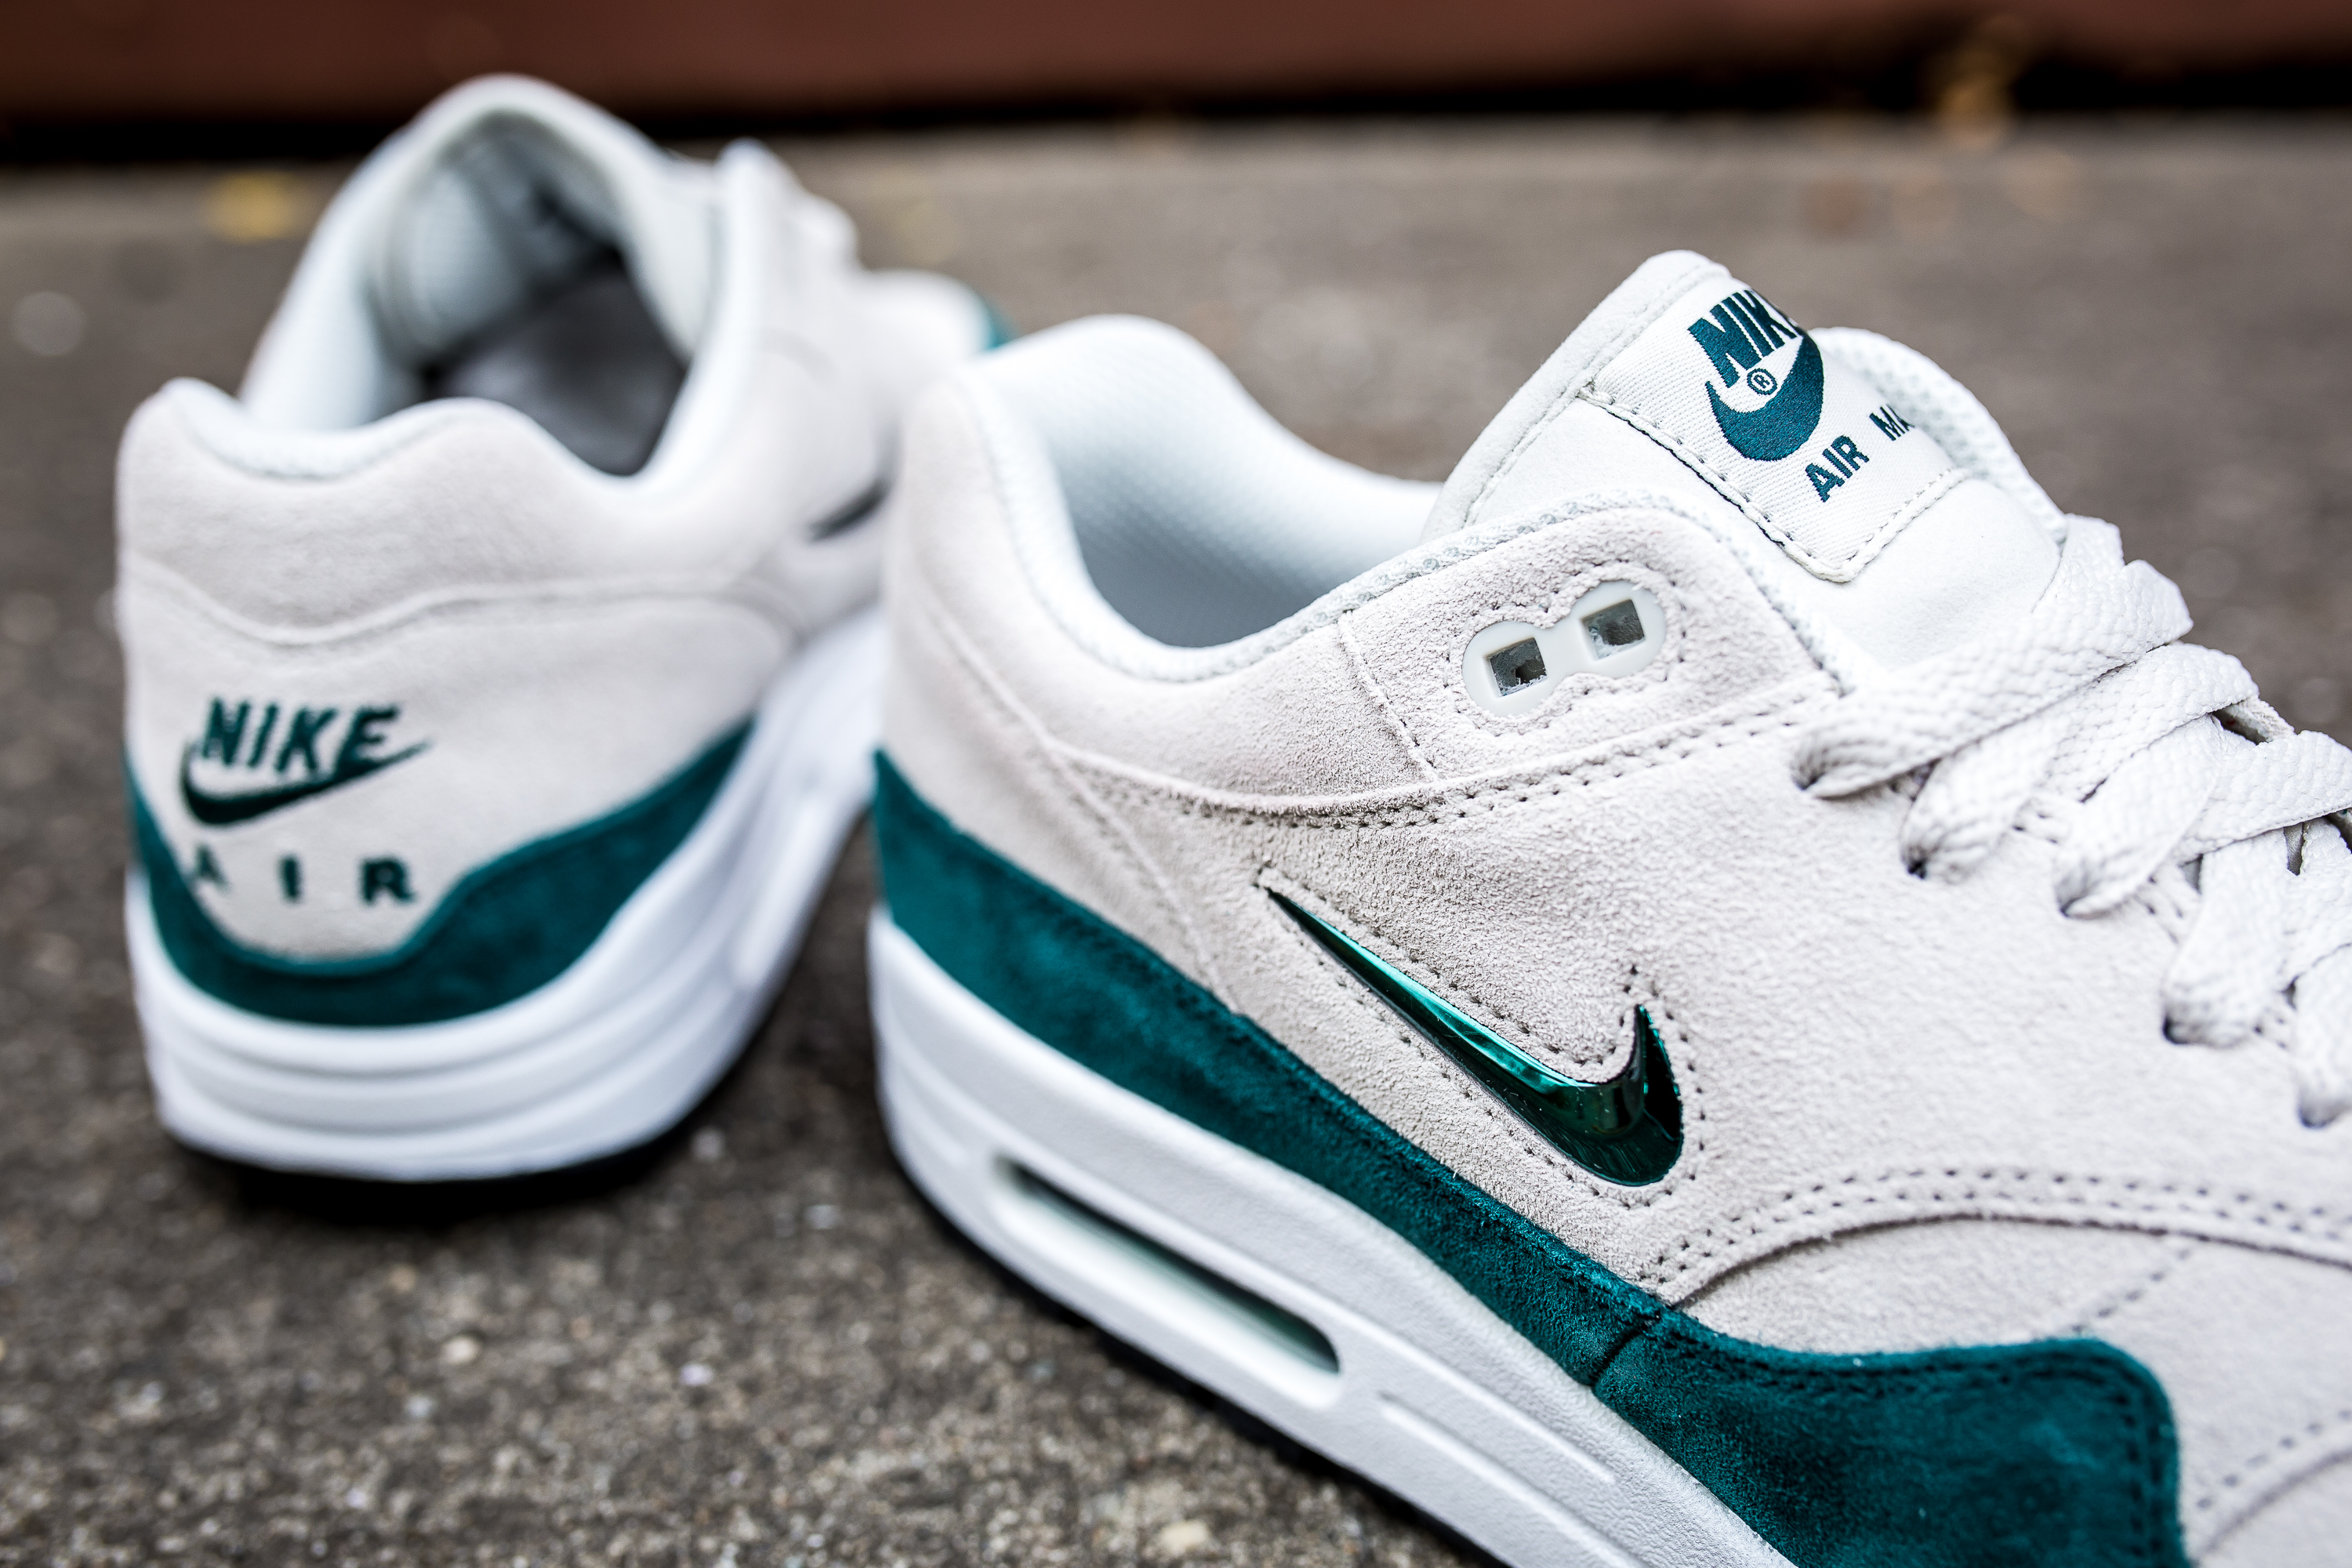 Nike Air Max 1 Jewel Atomic Teal 918354 003 – Fastsole